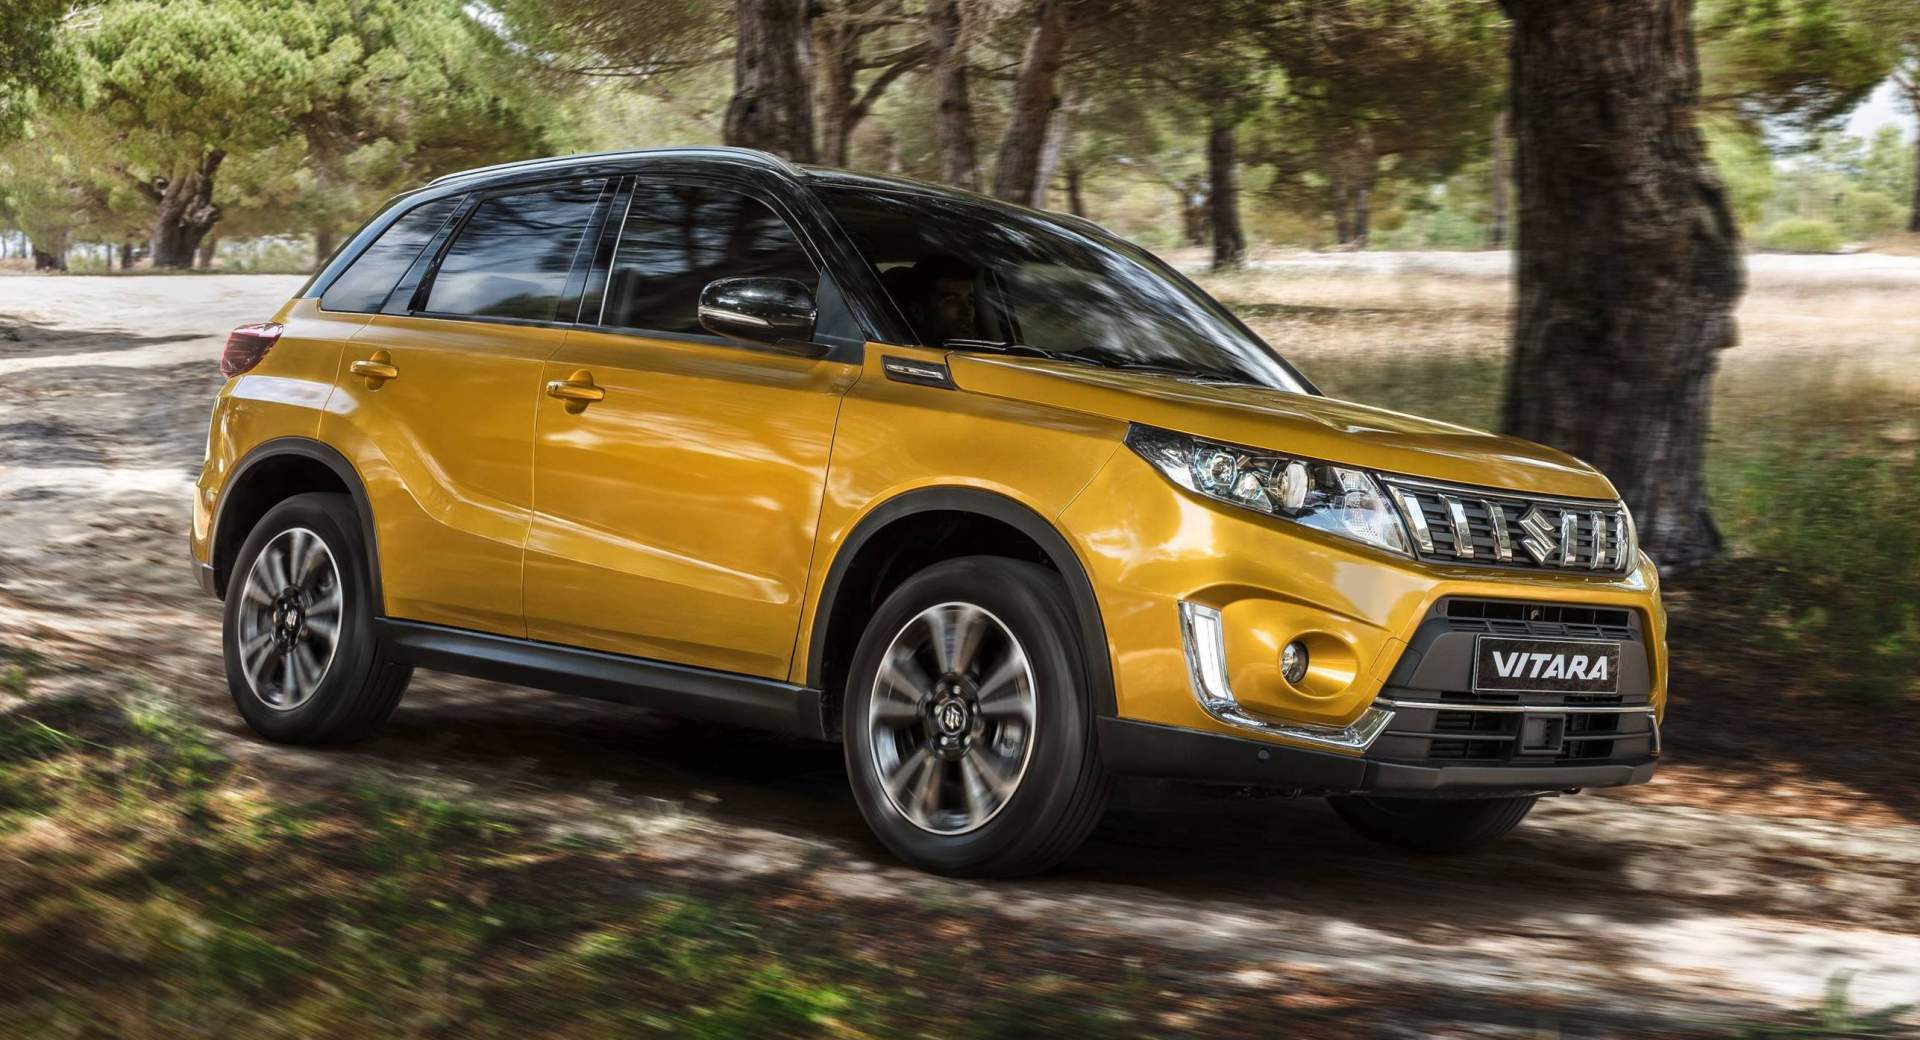 suzuki drops more photos of 2019 vitara prices it from. Black Bedroom Furniture Sets. Home Design Ideas